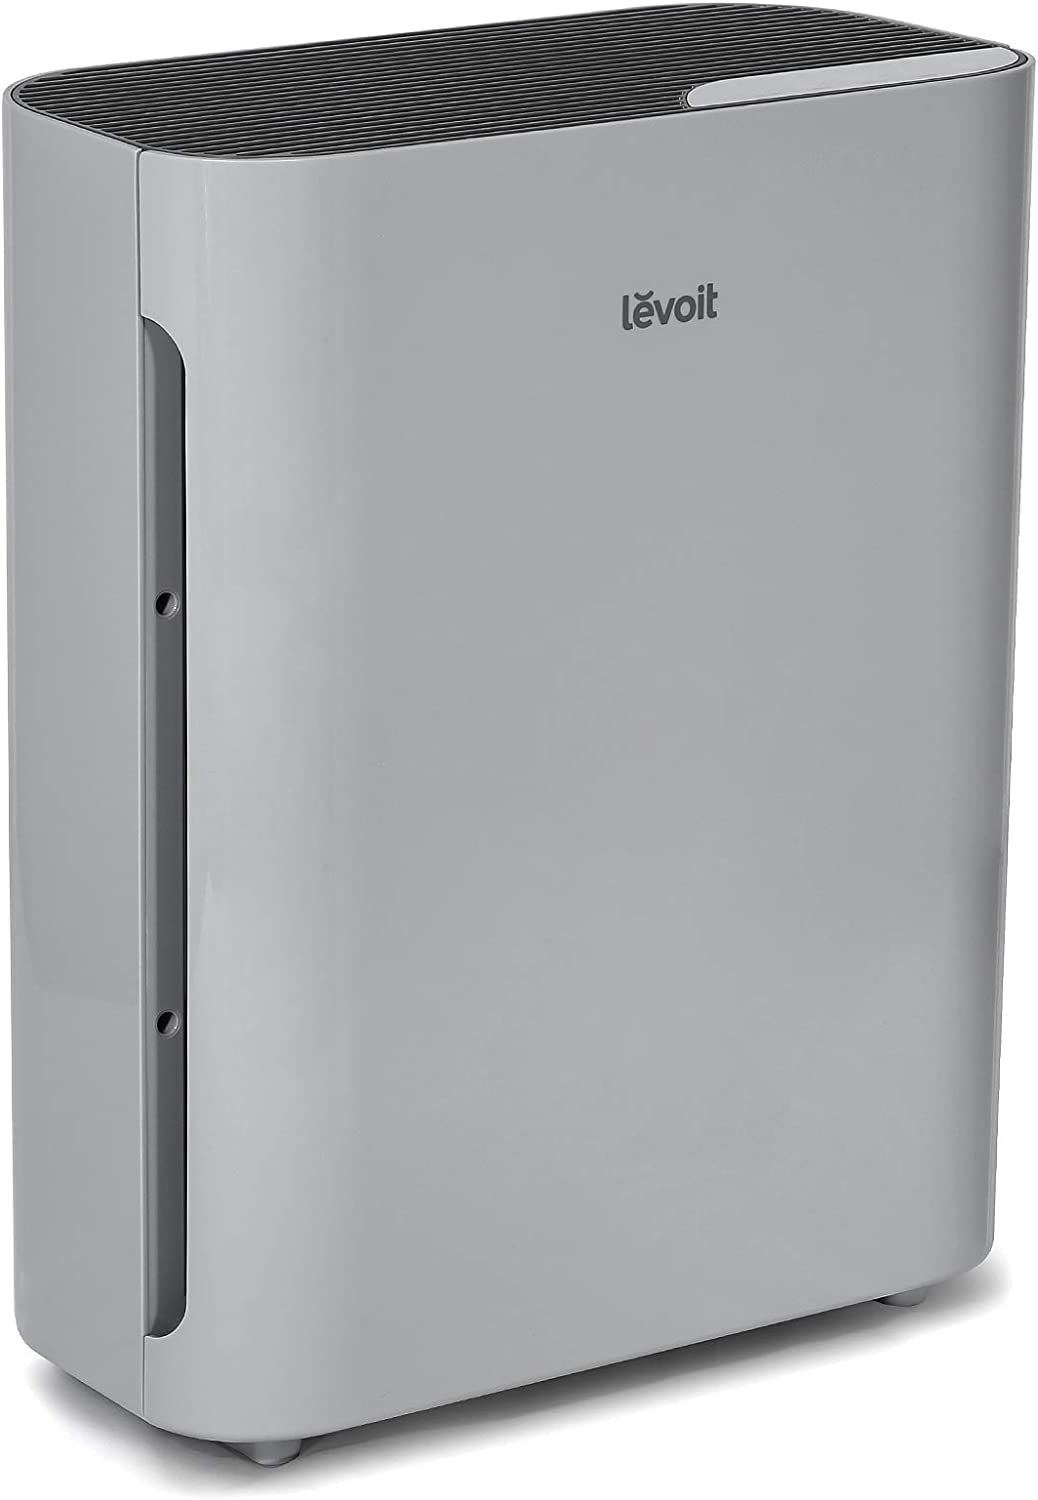 LEVOIT Air Purifier for Home Large Room, H13 True HEPA Filter Cleaner with Washable Filter for Allergies and Pets, Smokers, Mold, Pollen, Dust, Quiet Odor Eliminators for Bedroom, Vital 100 Grey